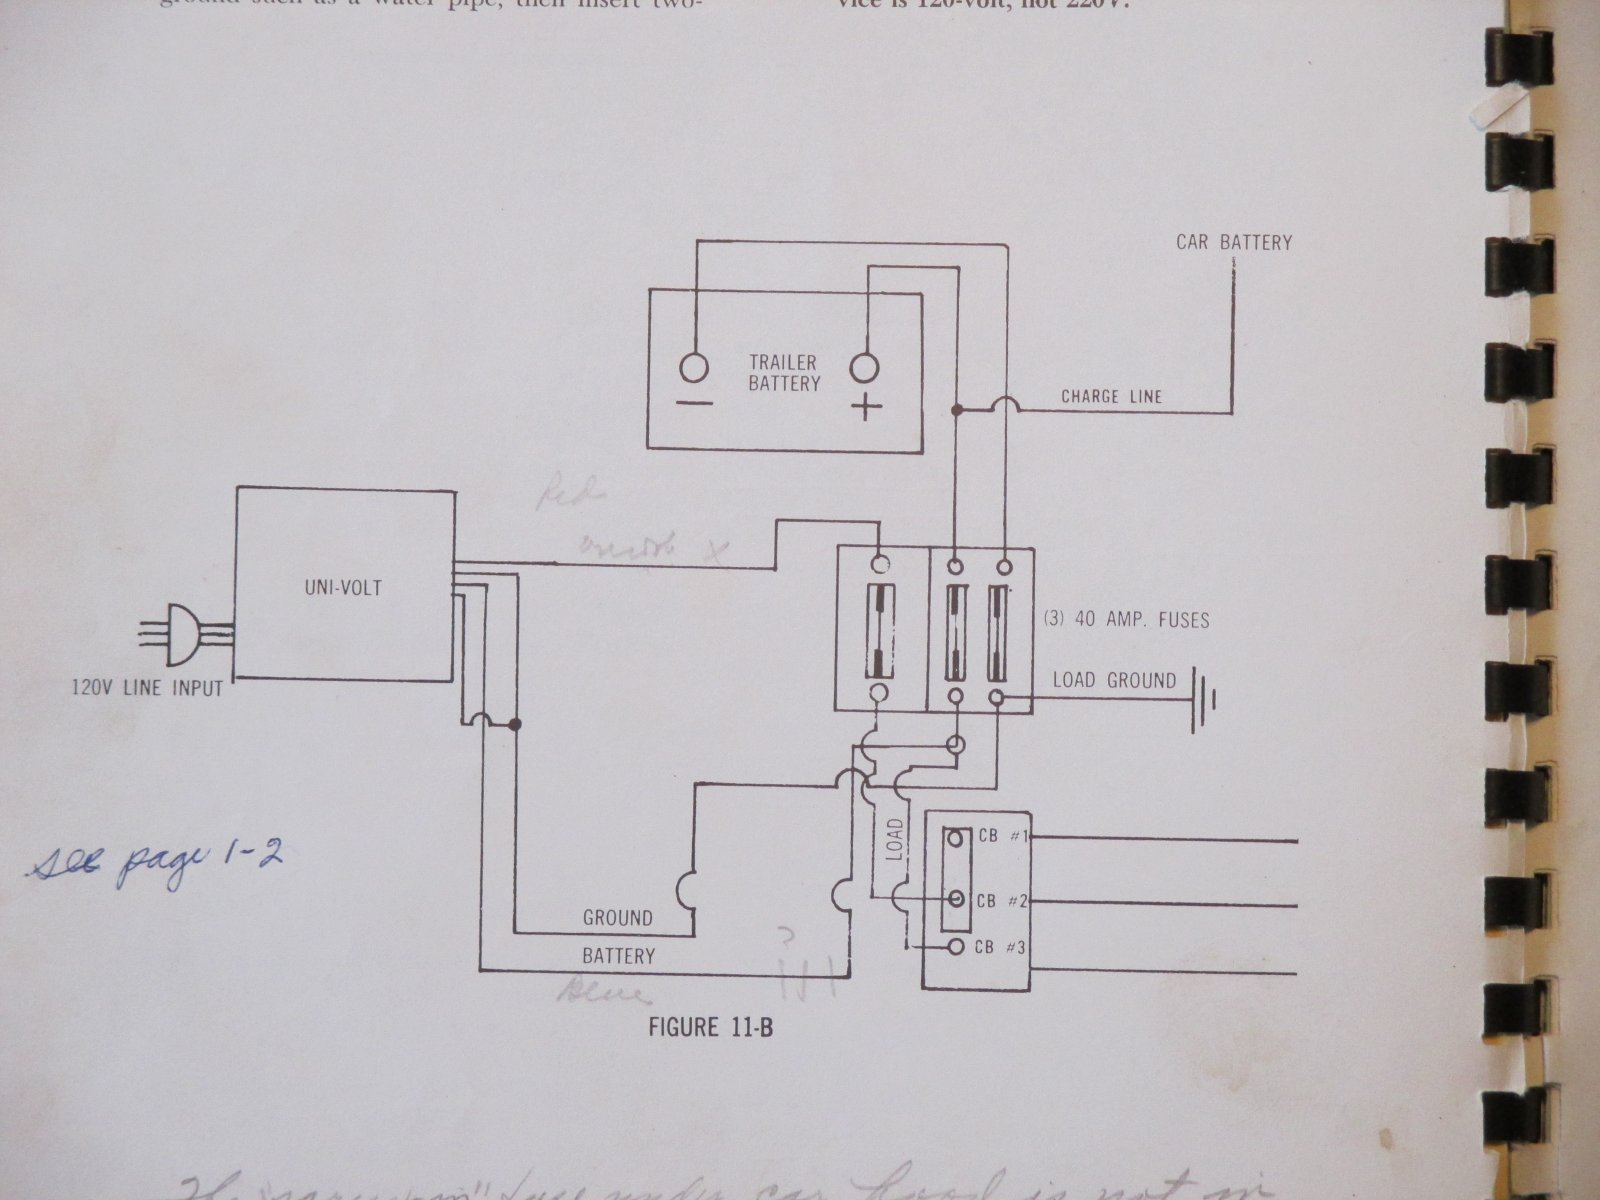 National Rv Power Inverter Wiring Diagram. Typical Rv Wiring Diagram on